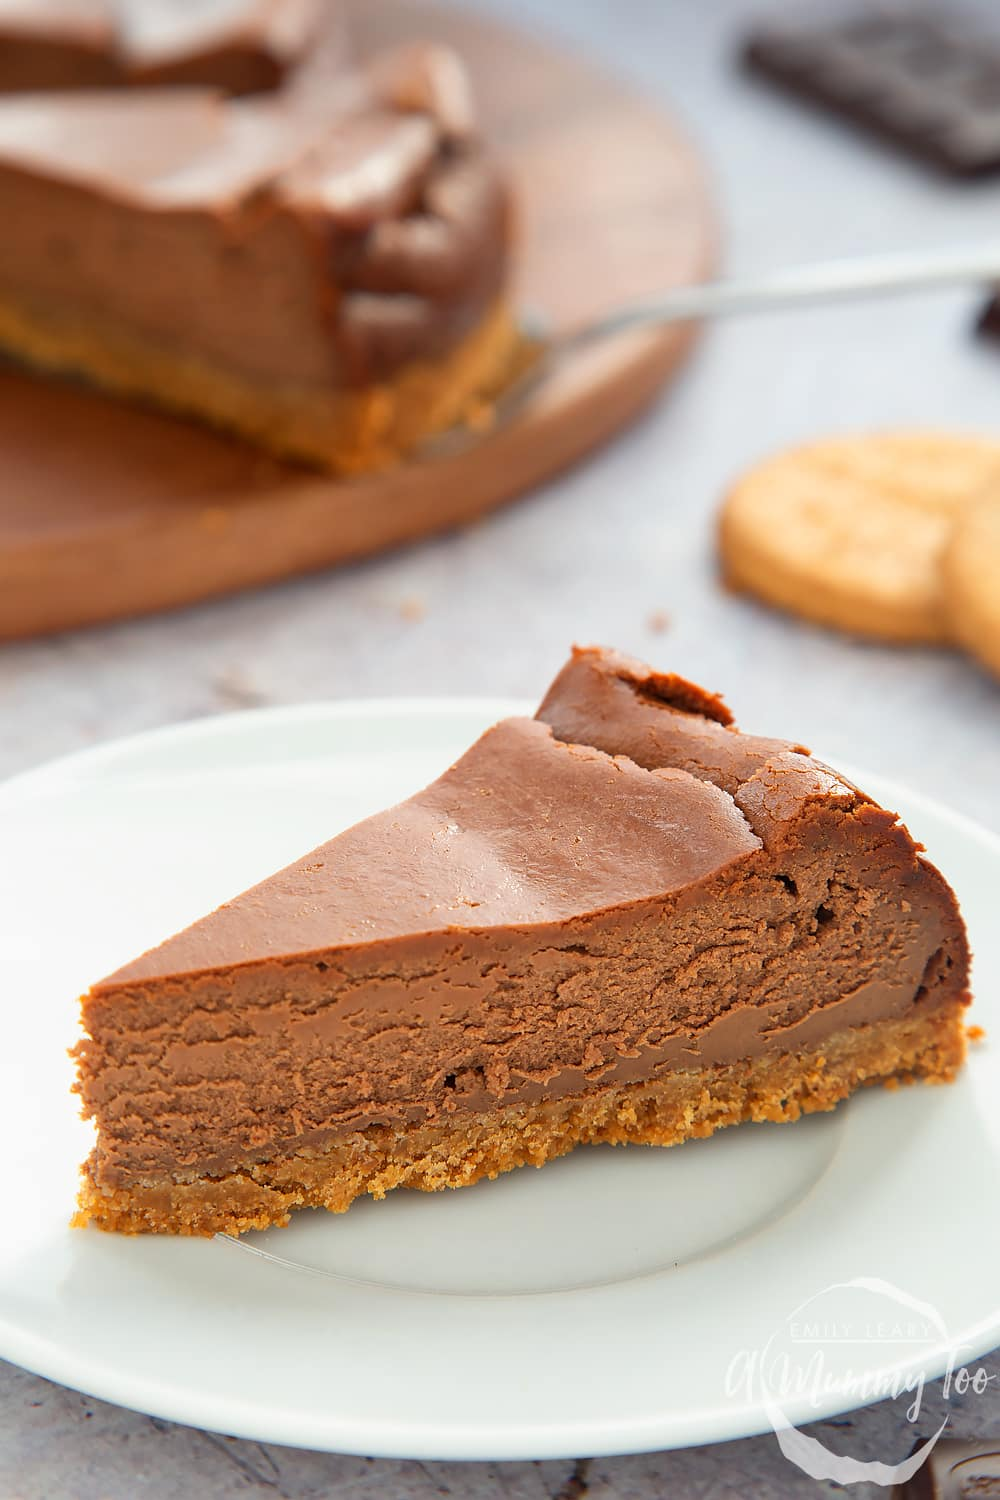 Close up of the side of the baked chocolate cheesecake on a white plate.